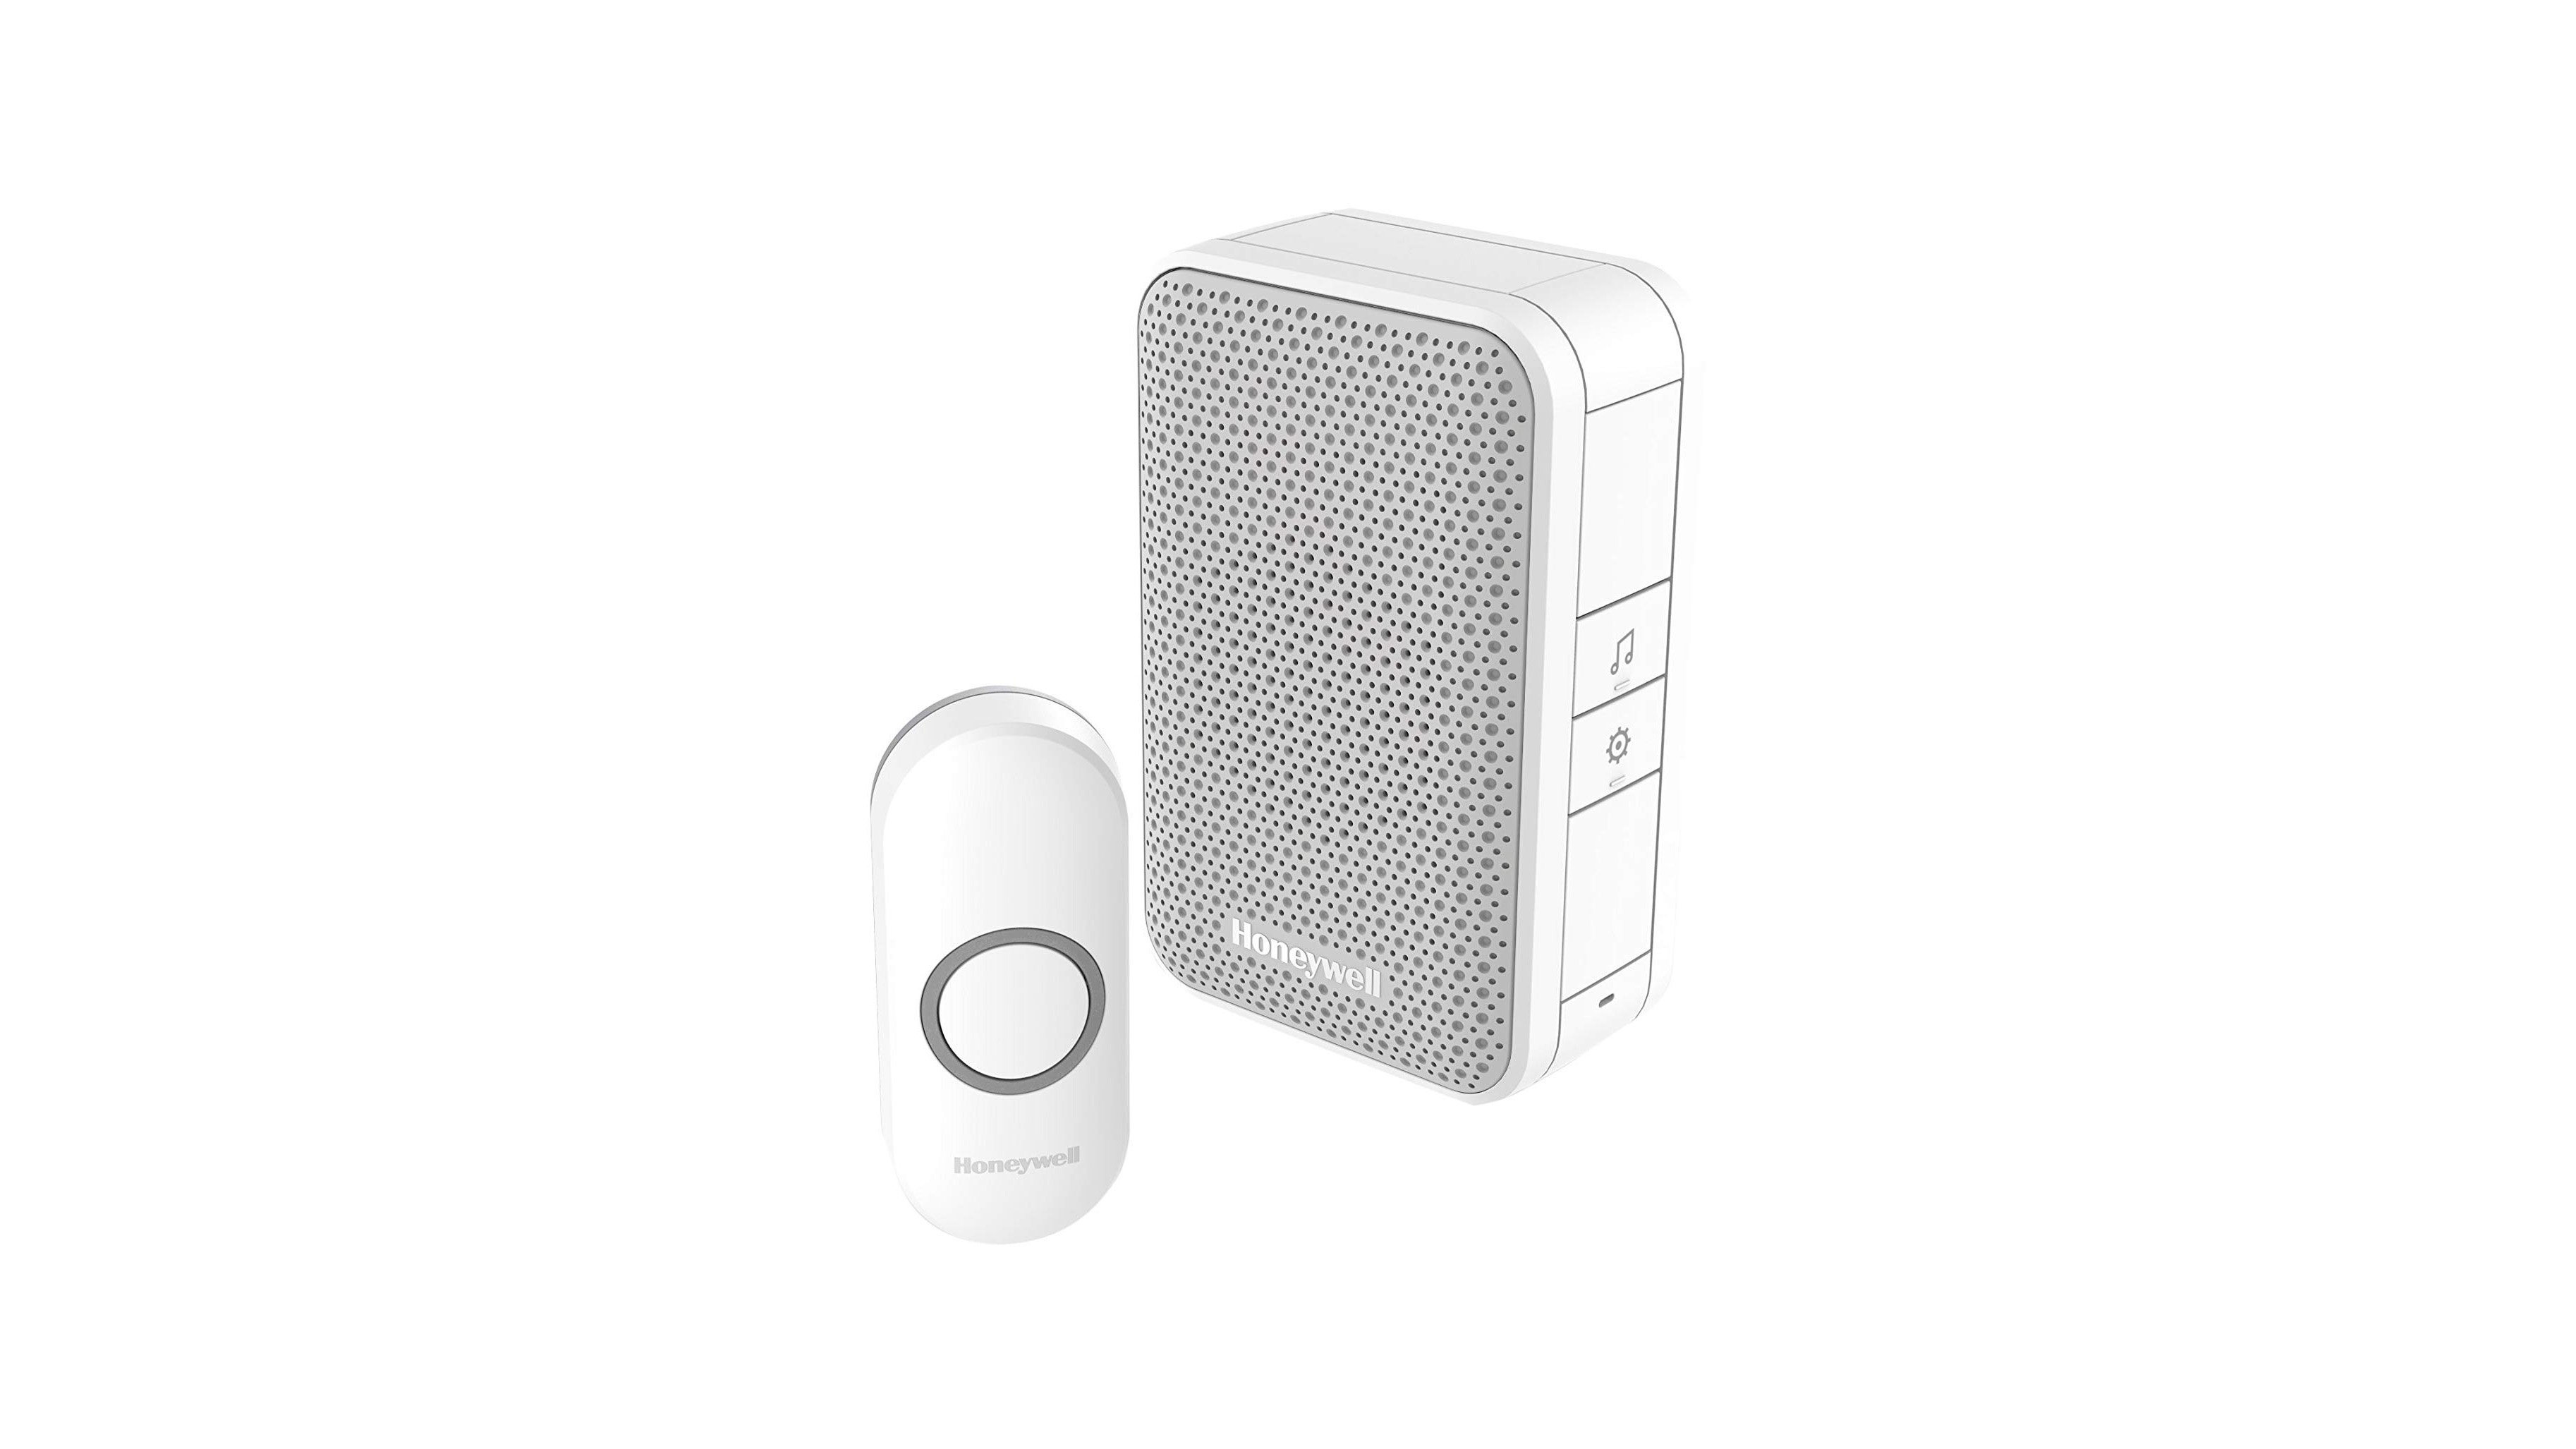 Best Wireless Doorbell 2018 Chimes That Grab Your Attention Every Electrical Wiring In The Home Deaf Doorbells Dc311n Doesnt Have All Smart Features Of Higher End Dc917 But If Youre Looking For A Reliable Push Button Bell With Battery Chime